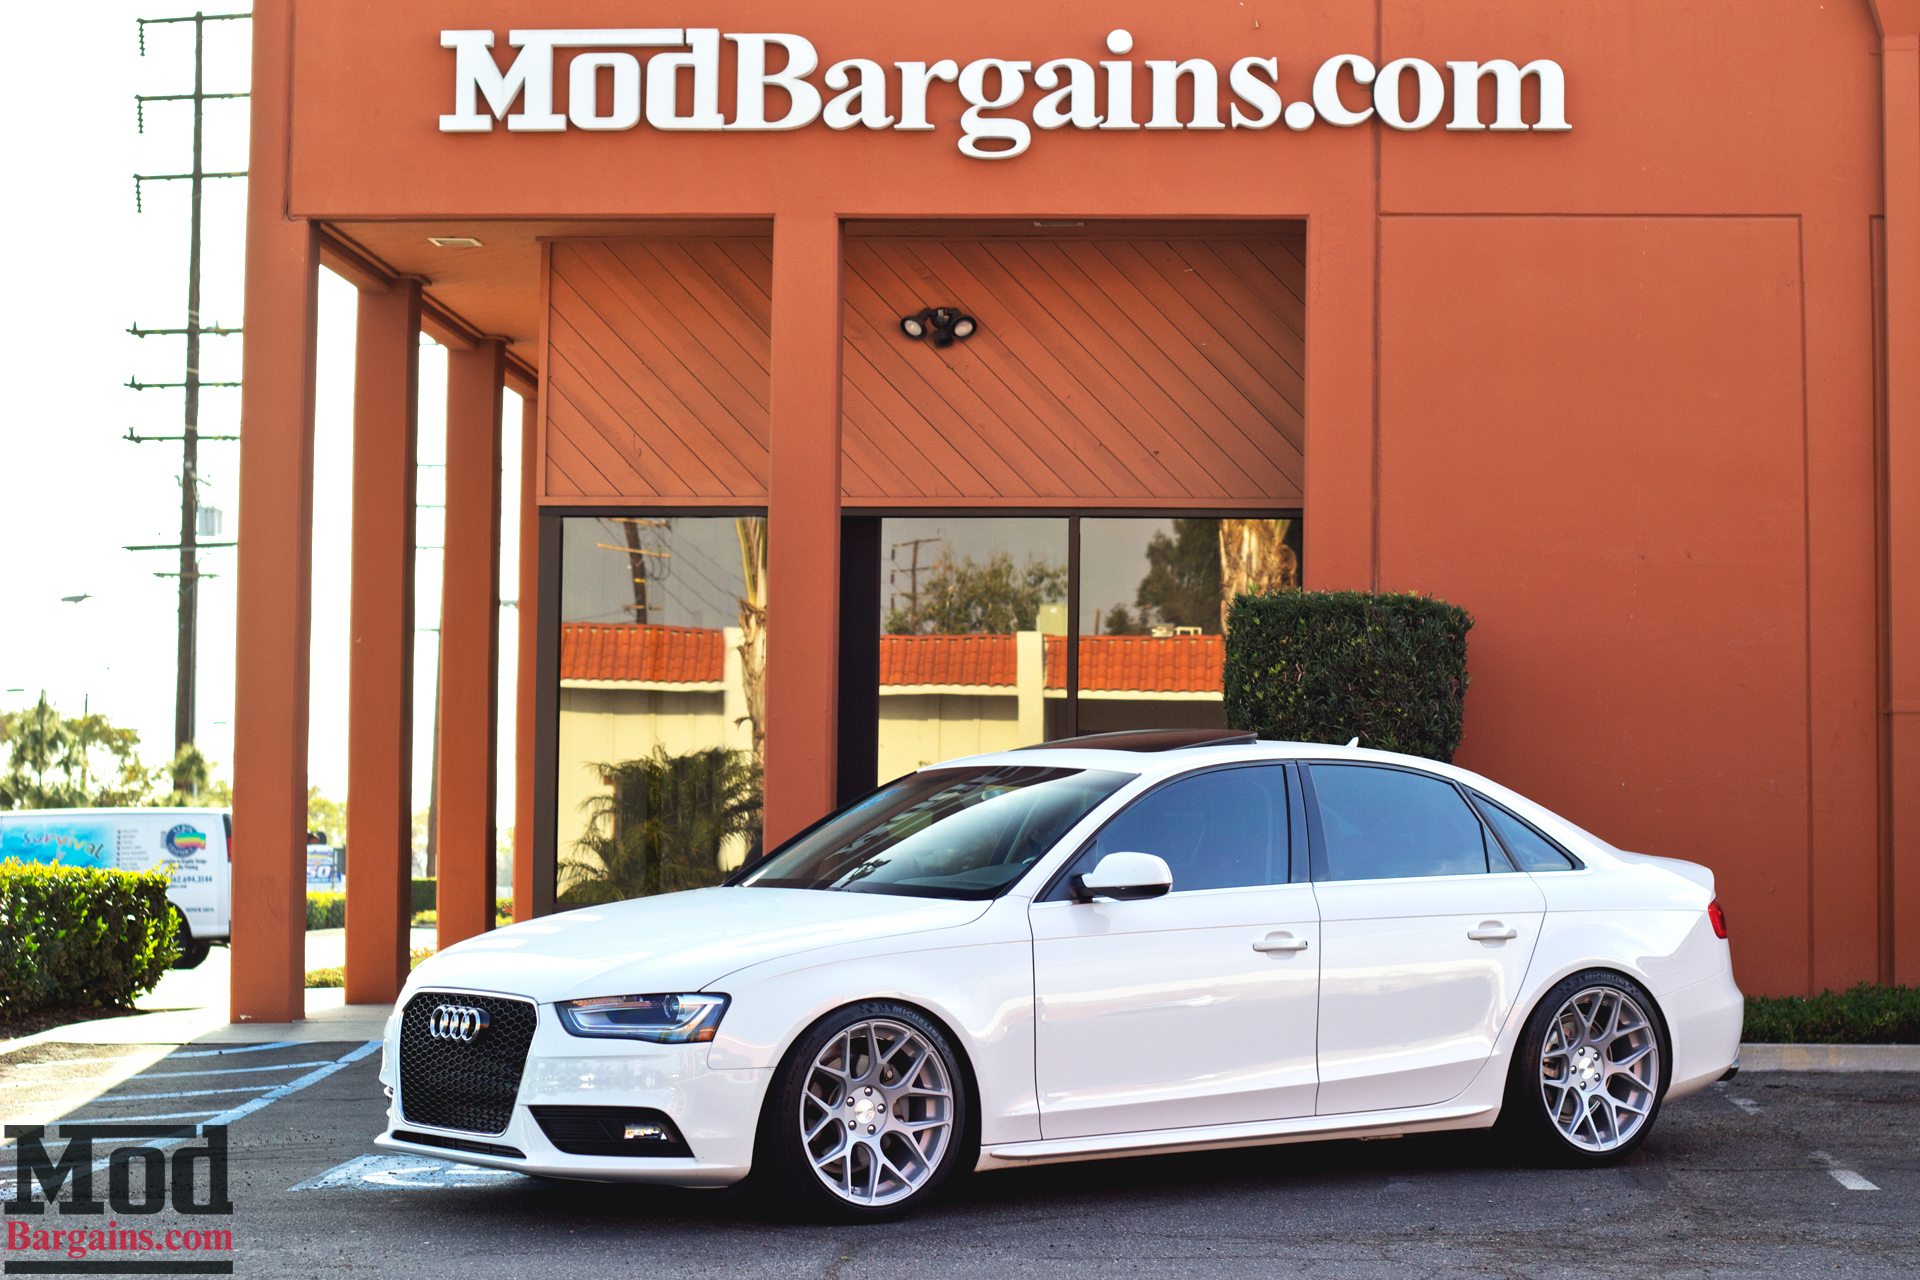 Avant Garde M590 Wheels for Audi B8 A4 5x112mm Satin Silver Installed 1